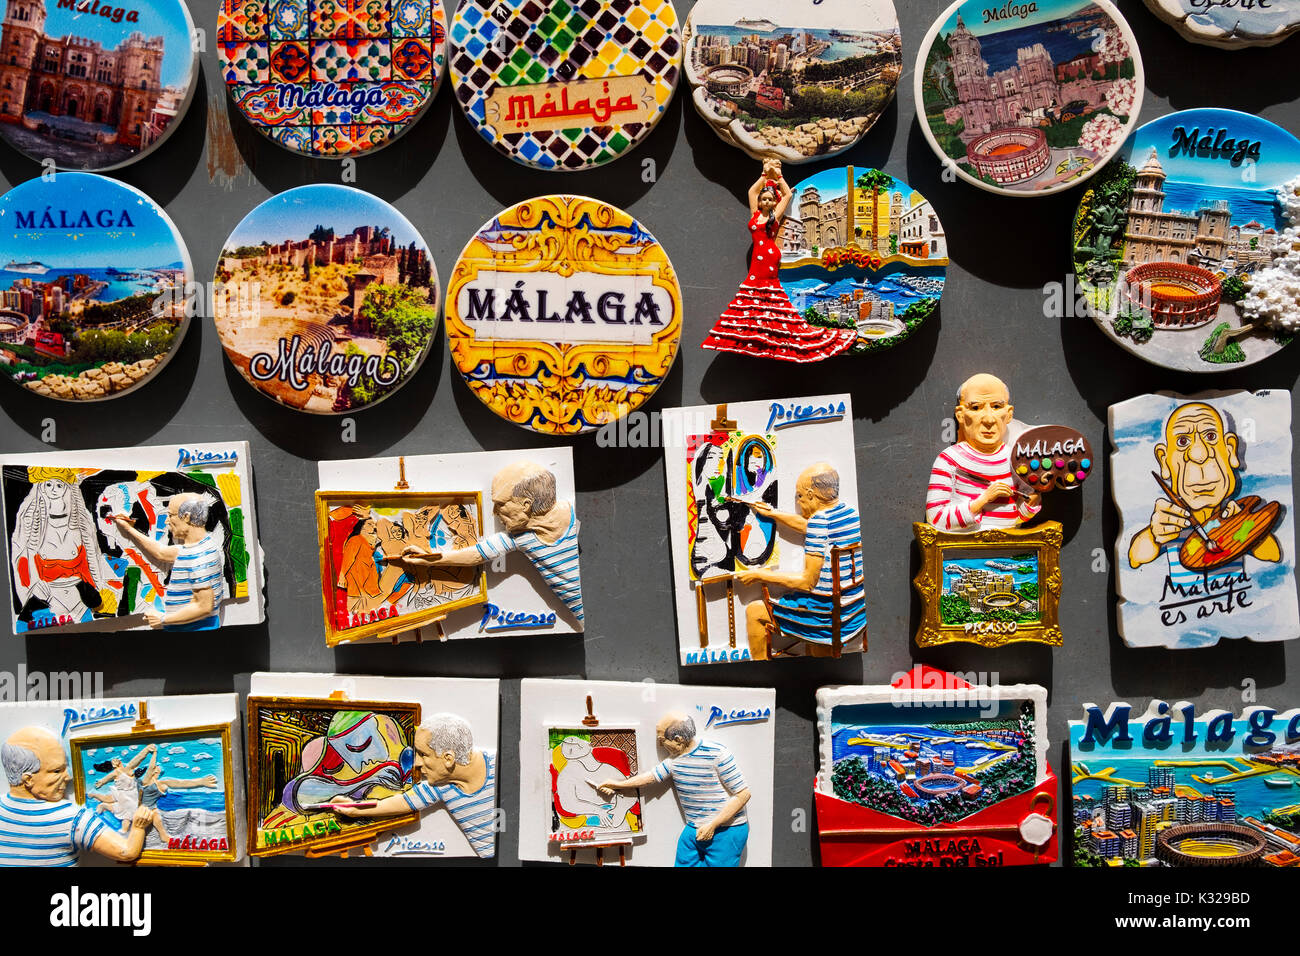 Souvenirs gift shop, Malaga city, Costa del Sol, Andalusia southern Spain, Europe - Stock Image